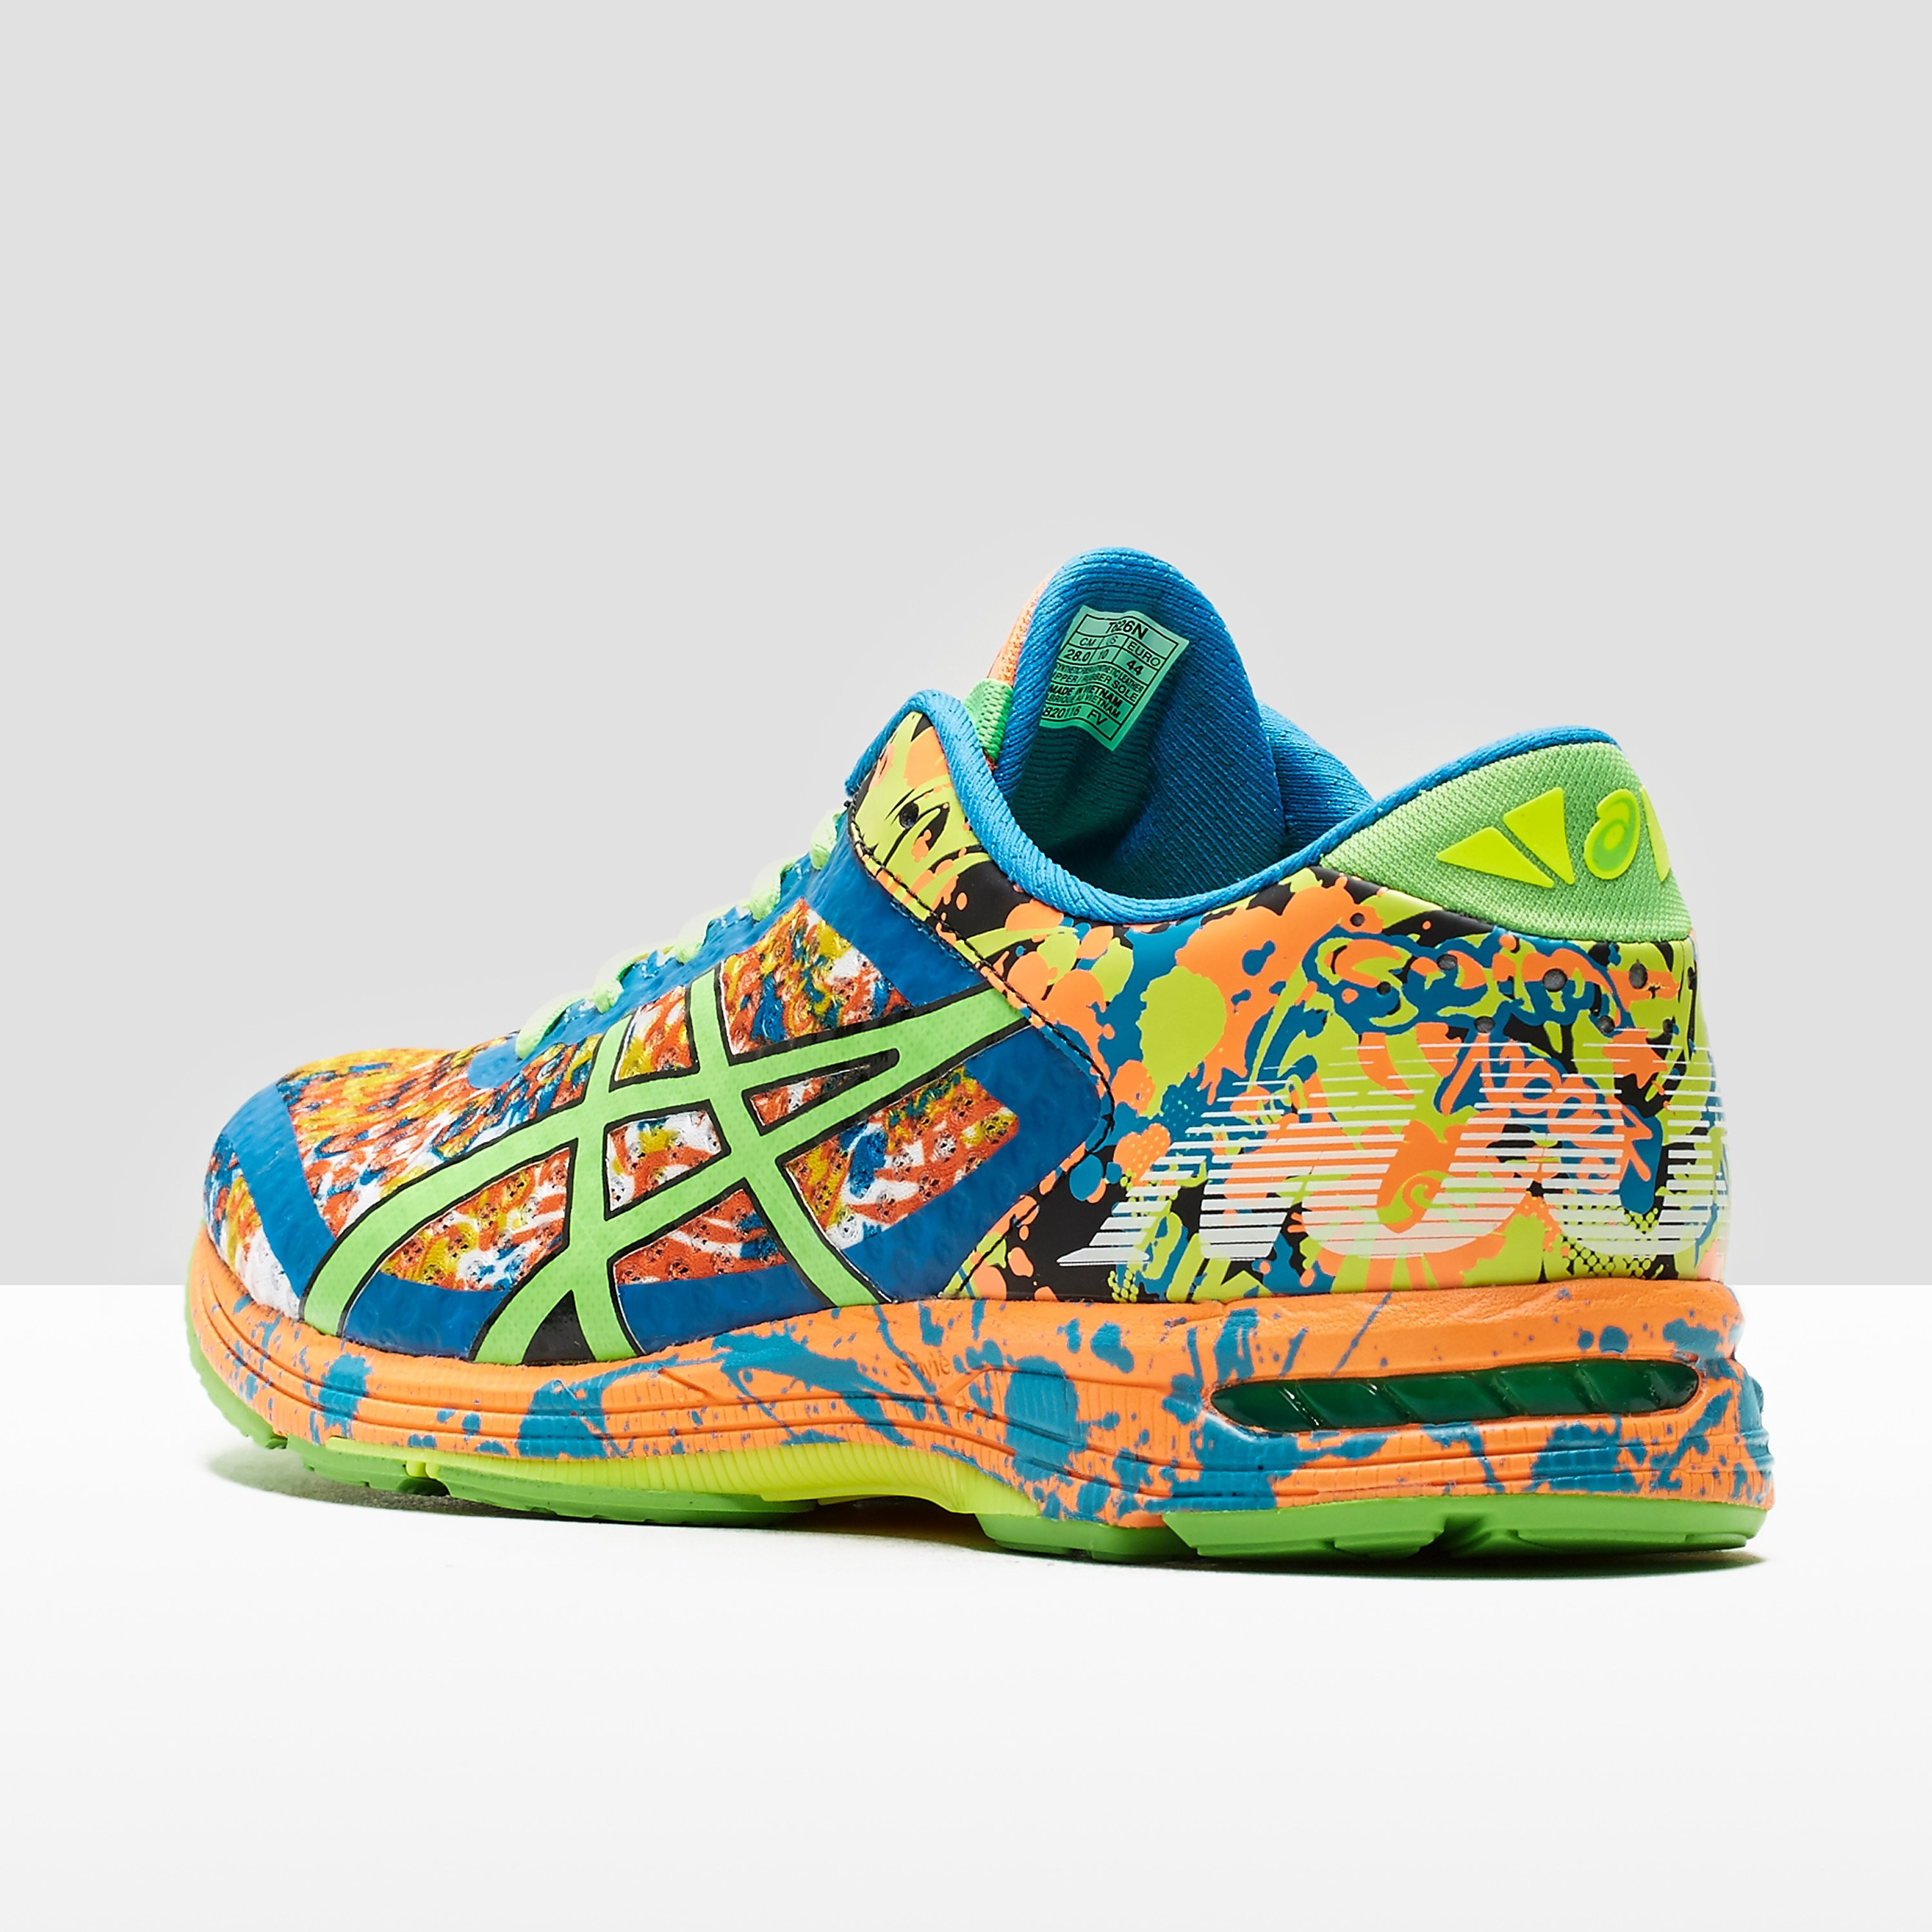 ASICS Gel-Noosa Tri 11 Men's Running Shoe